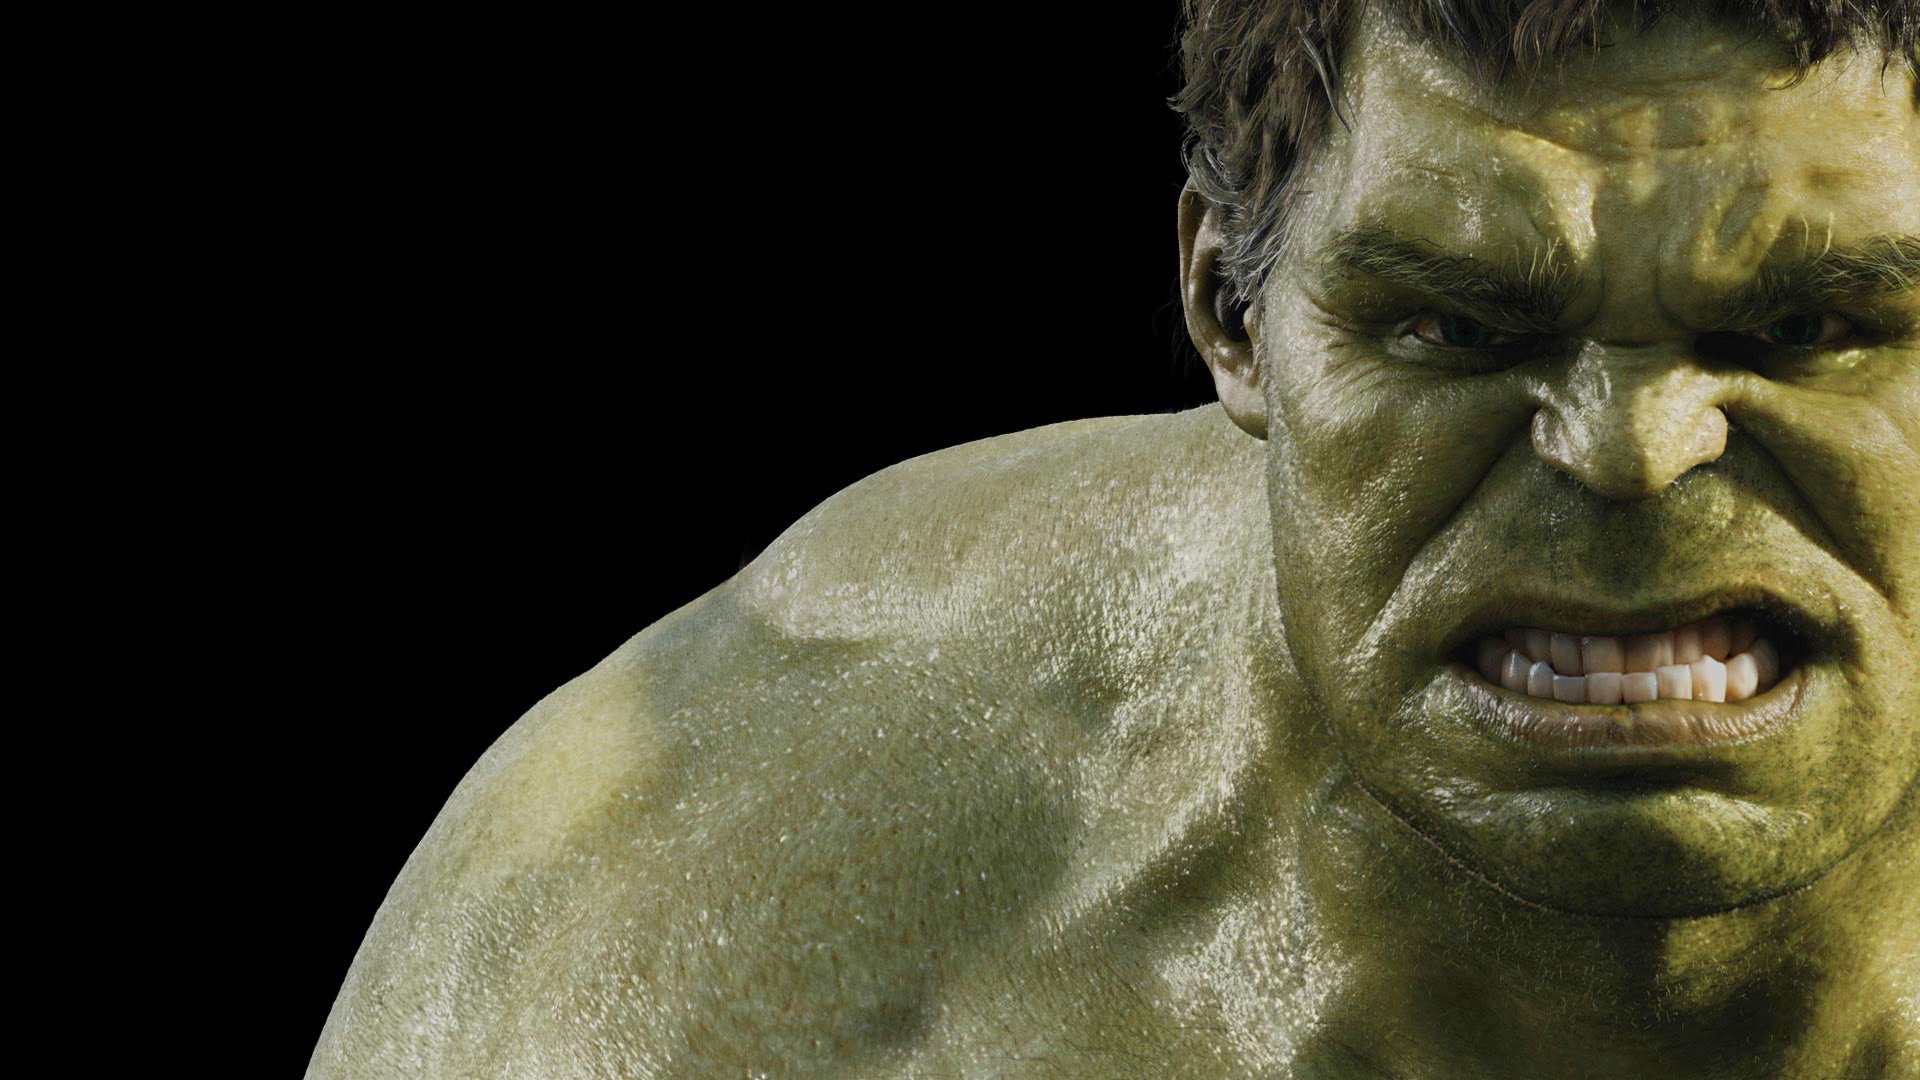 Incredible Hulk Wallpapers 4USkYcom 1920x1080